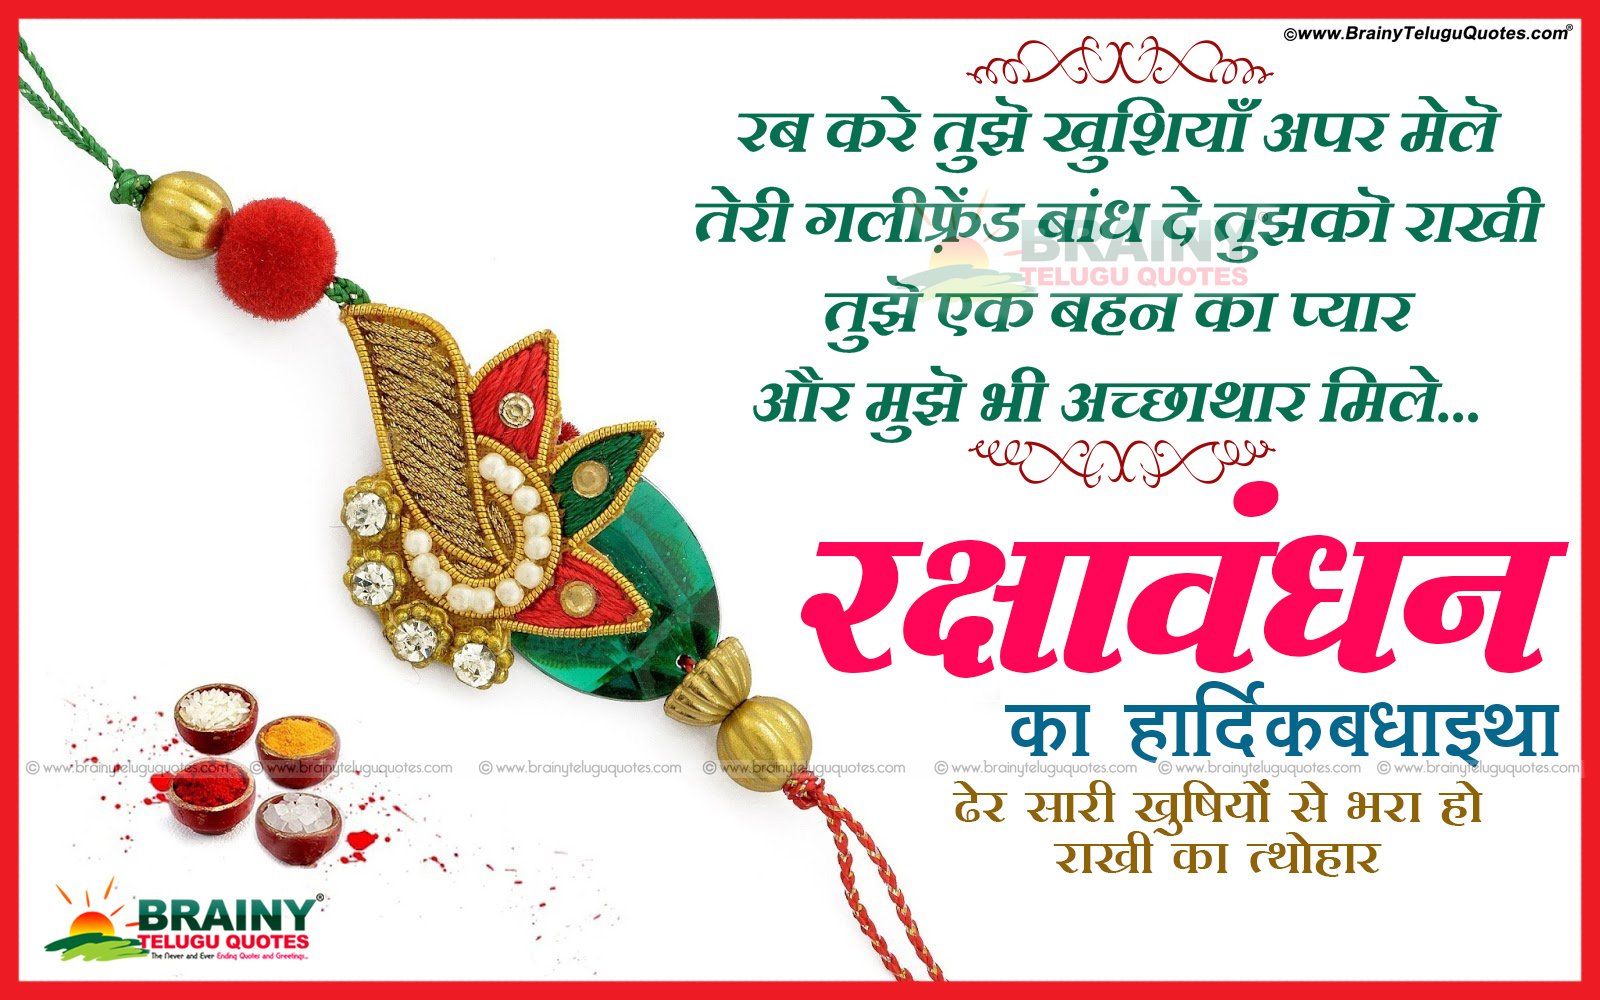 Happy raksha bandhan wishes sms and essay for brother and sister raksha bandhan wishes for sister kristyandbryce Image collections